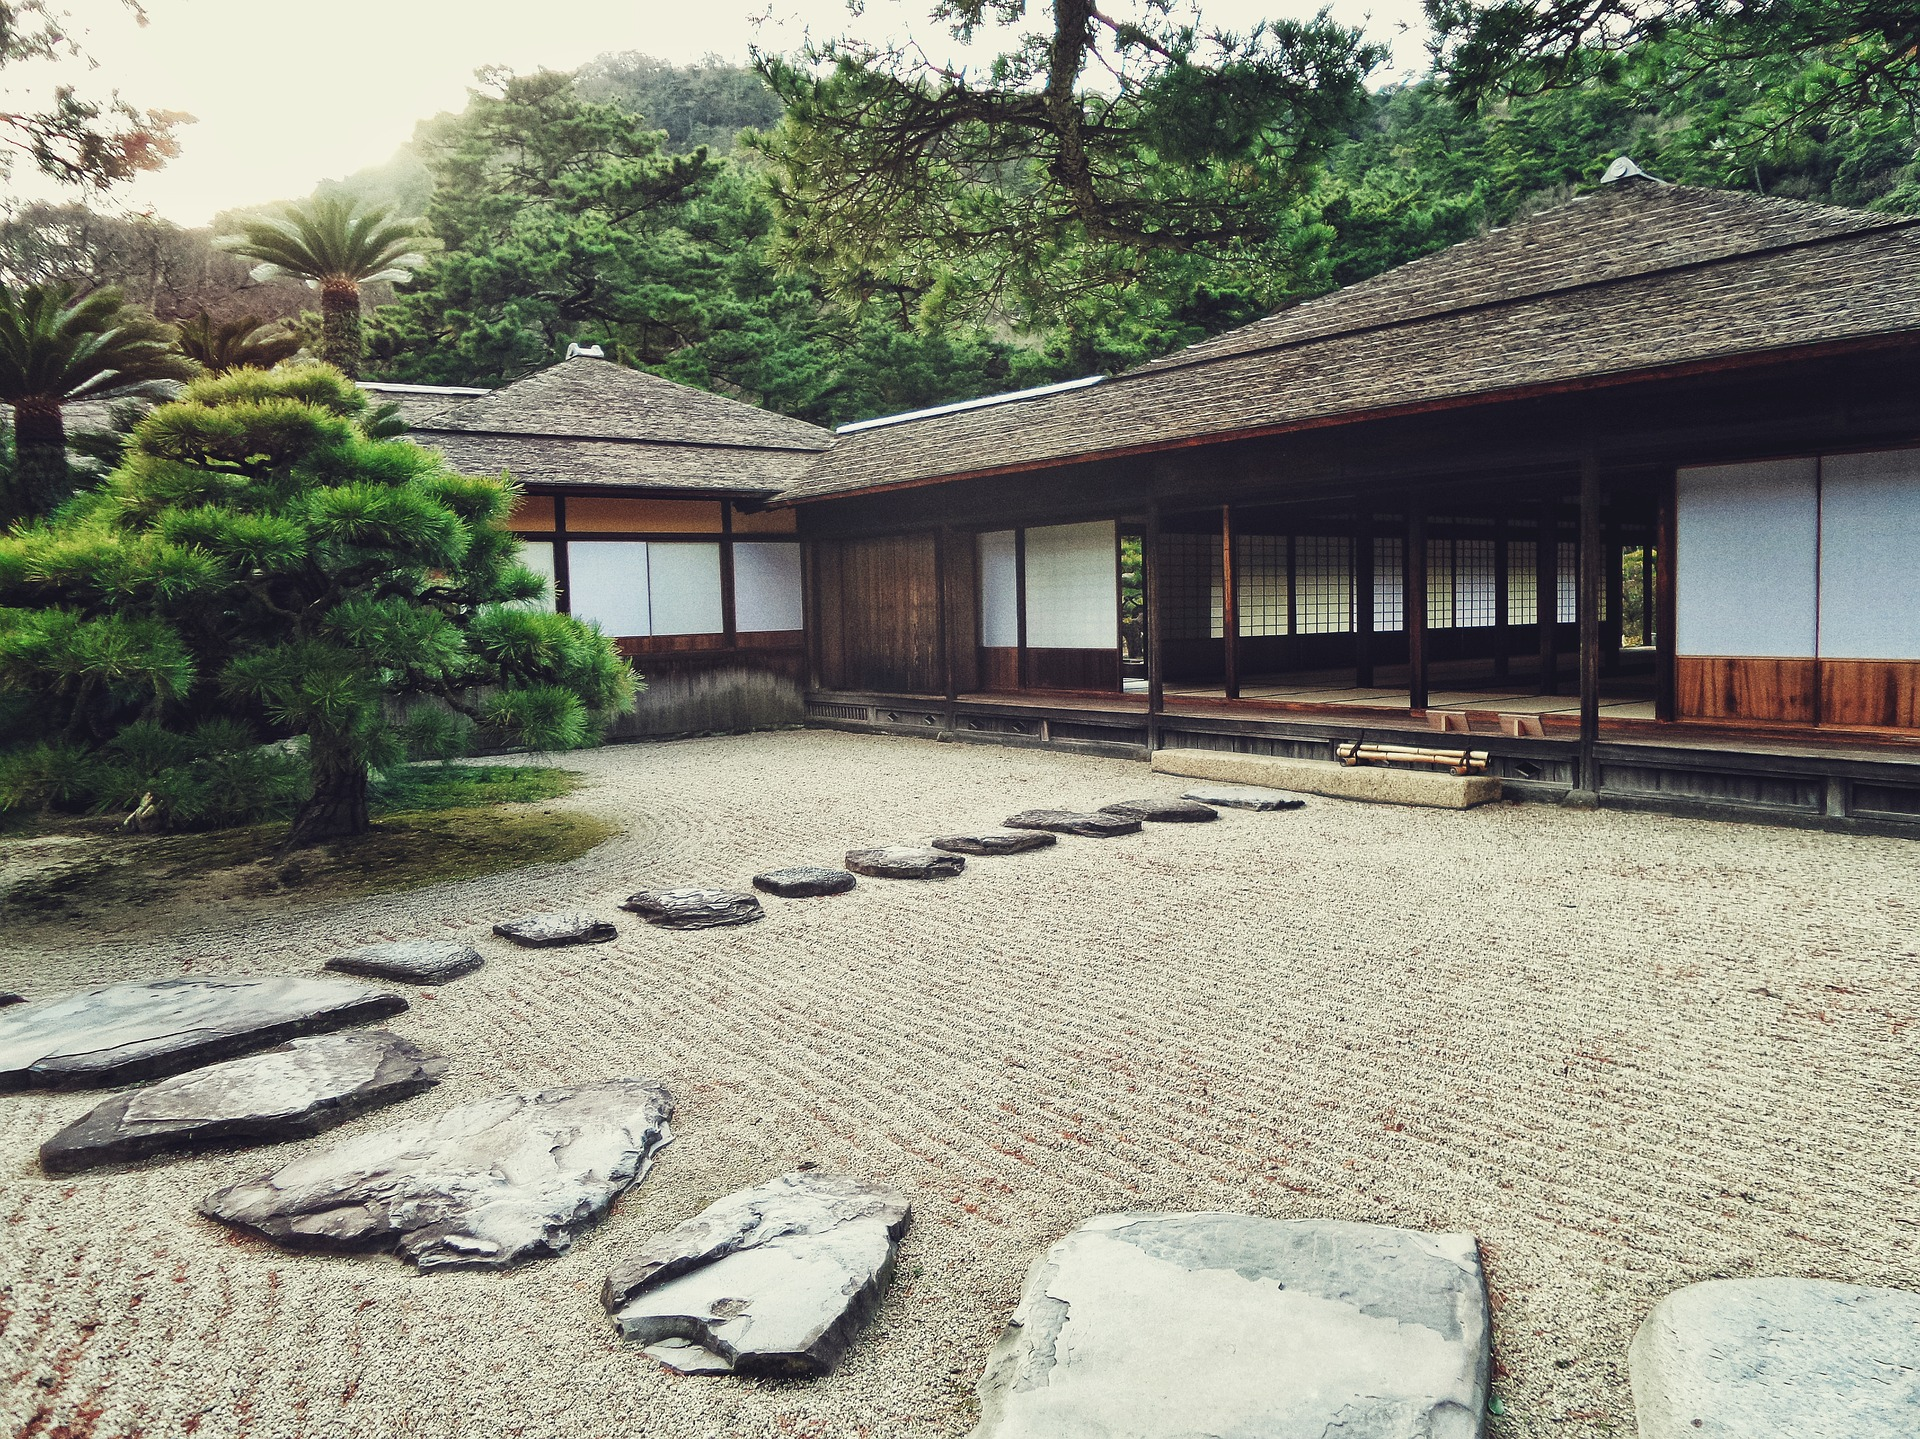 Stone paths going towards the house of meditation.